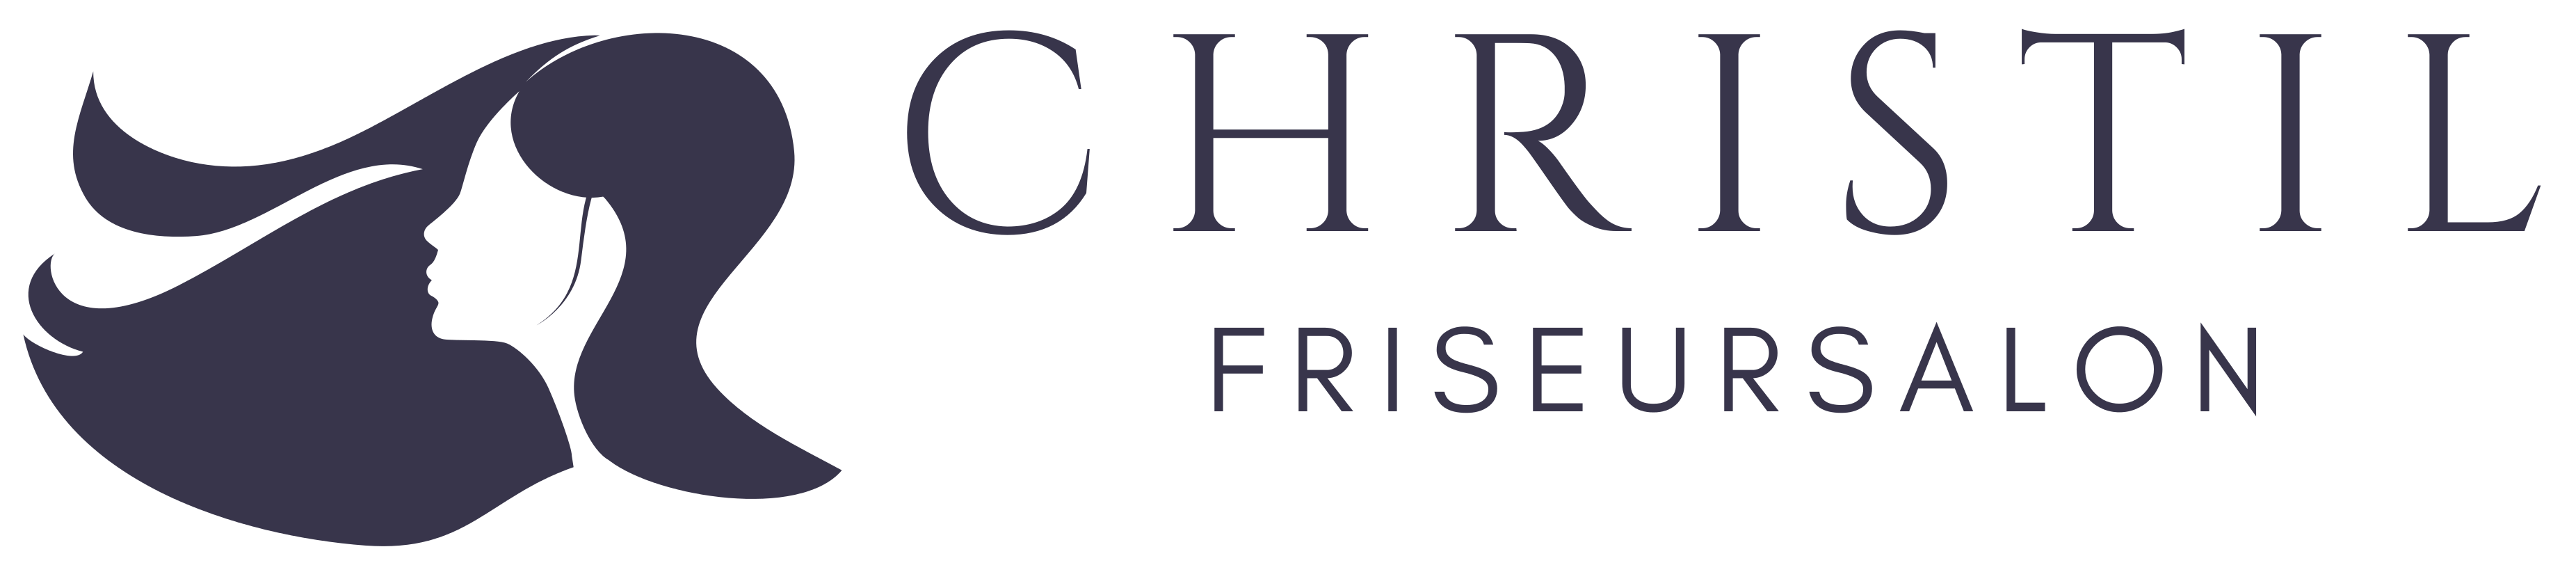 Christil Friseursalon